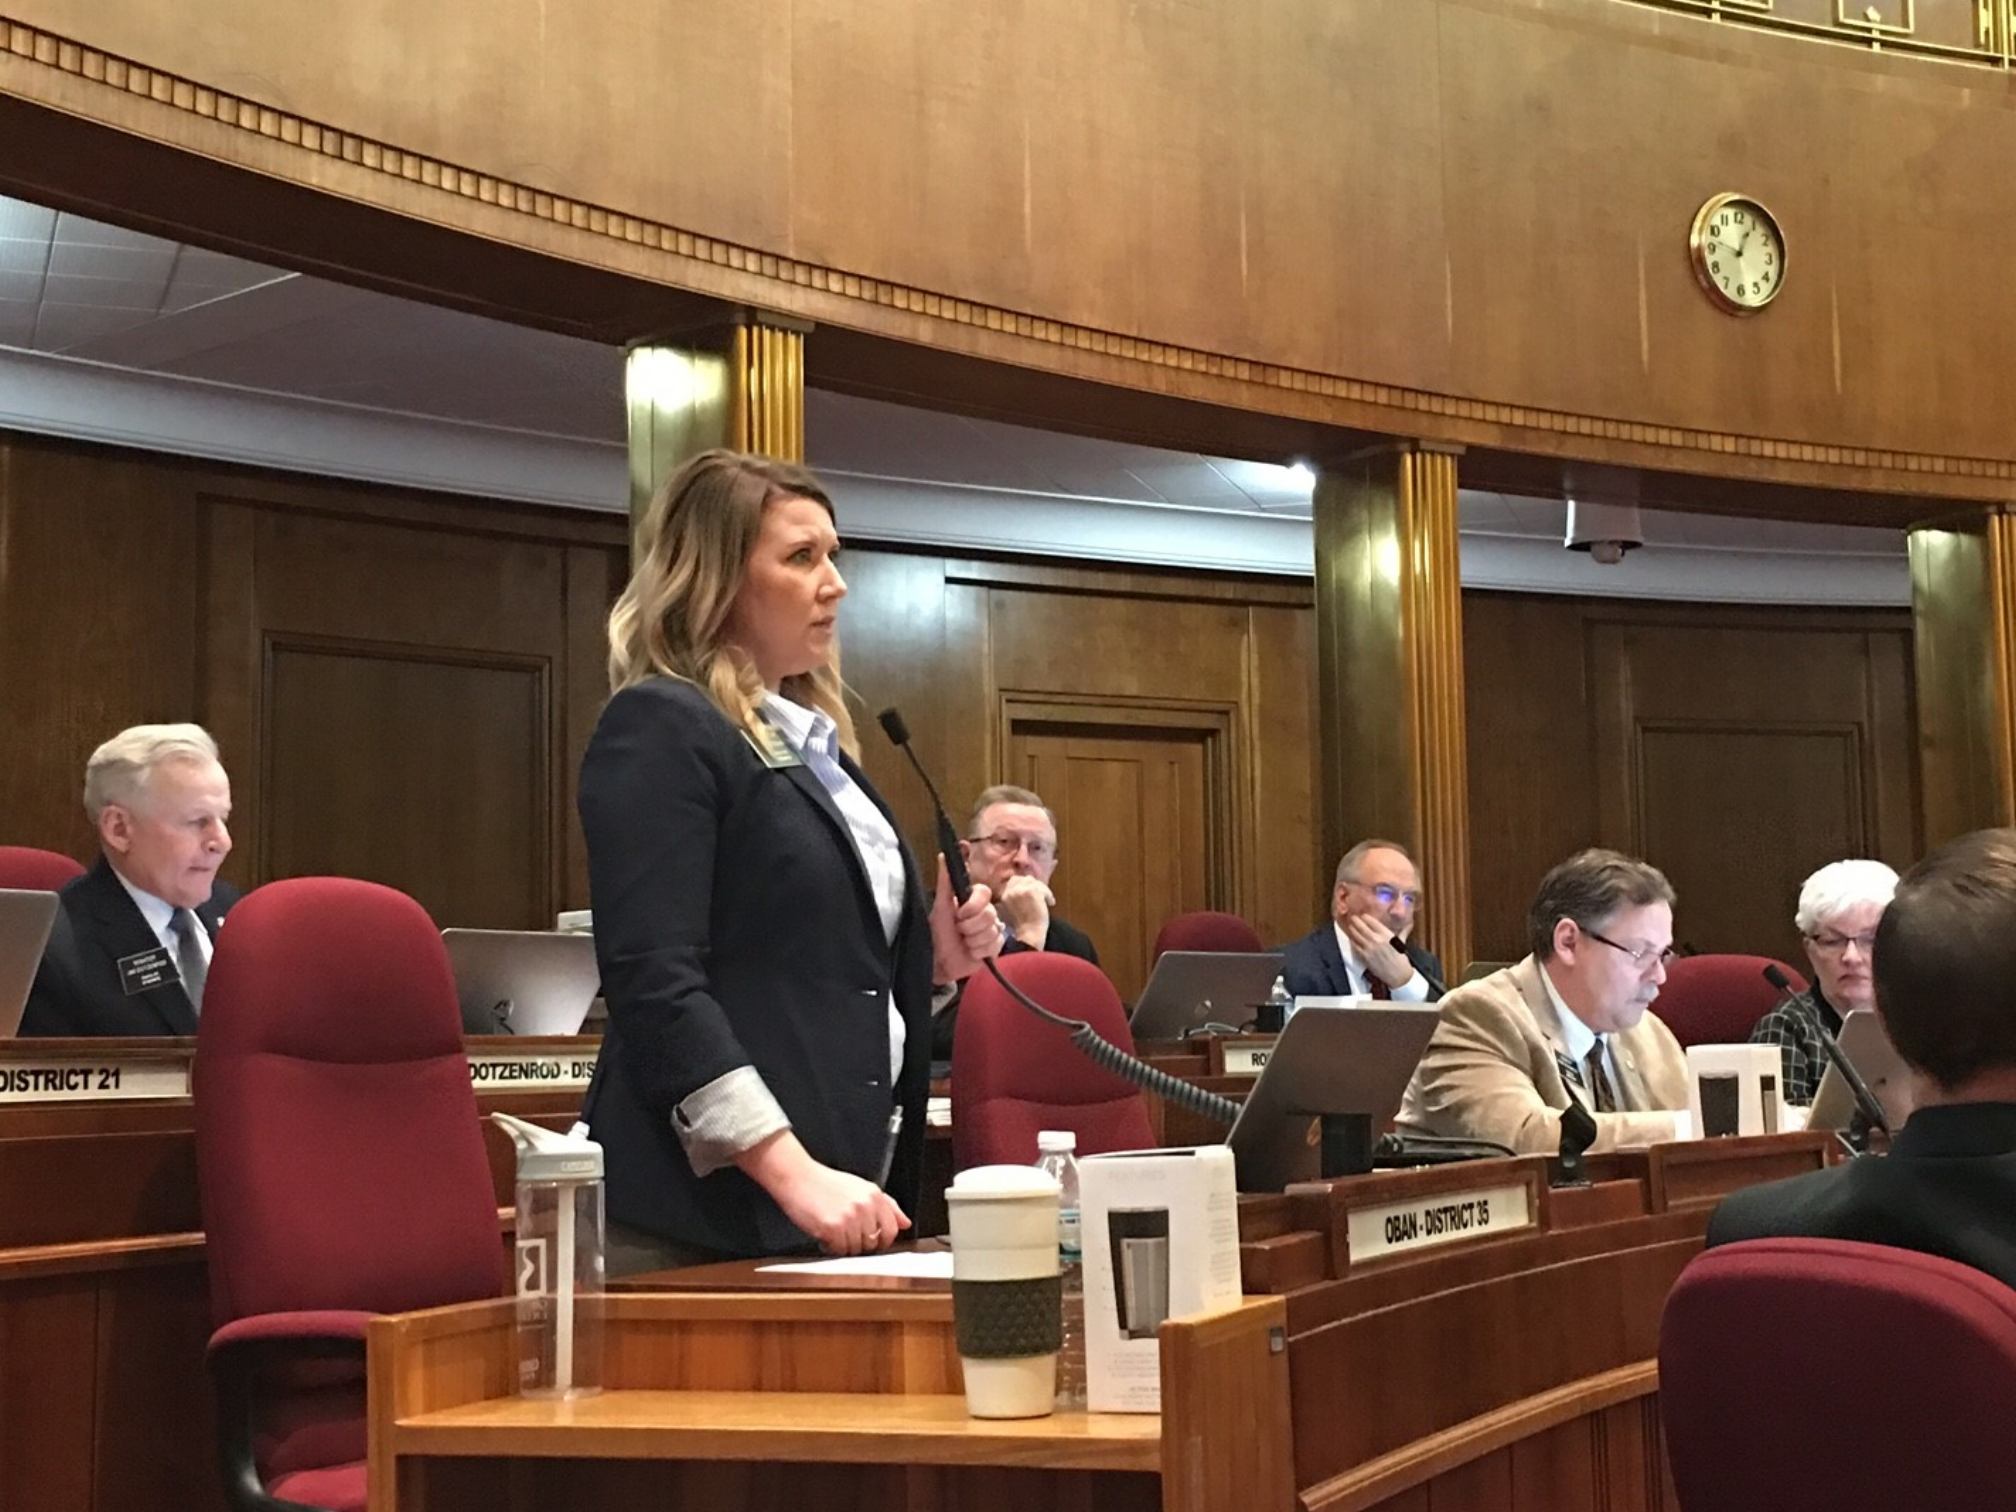 When I rise to speak in the ND Senate chamber, I'm serving as your voice on legislative issues. Every day, I hear your stories and strive to represent your interests when we shape policy.